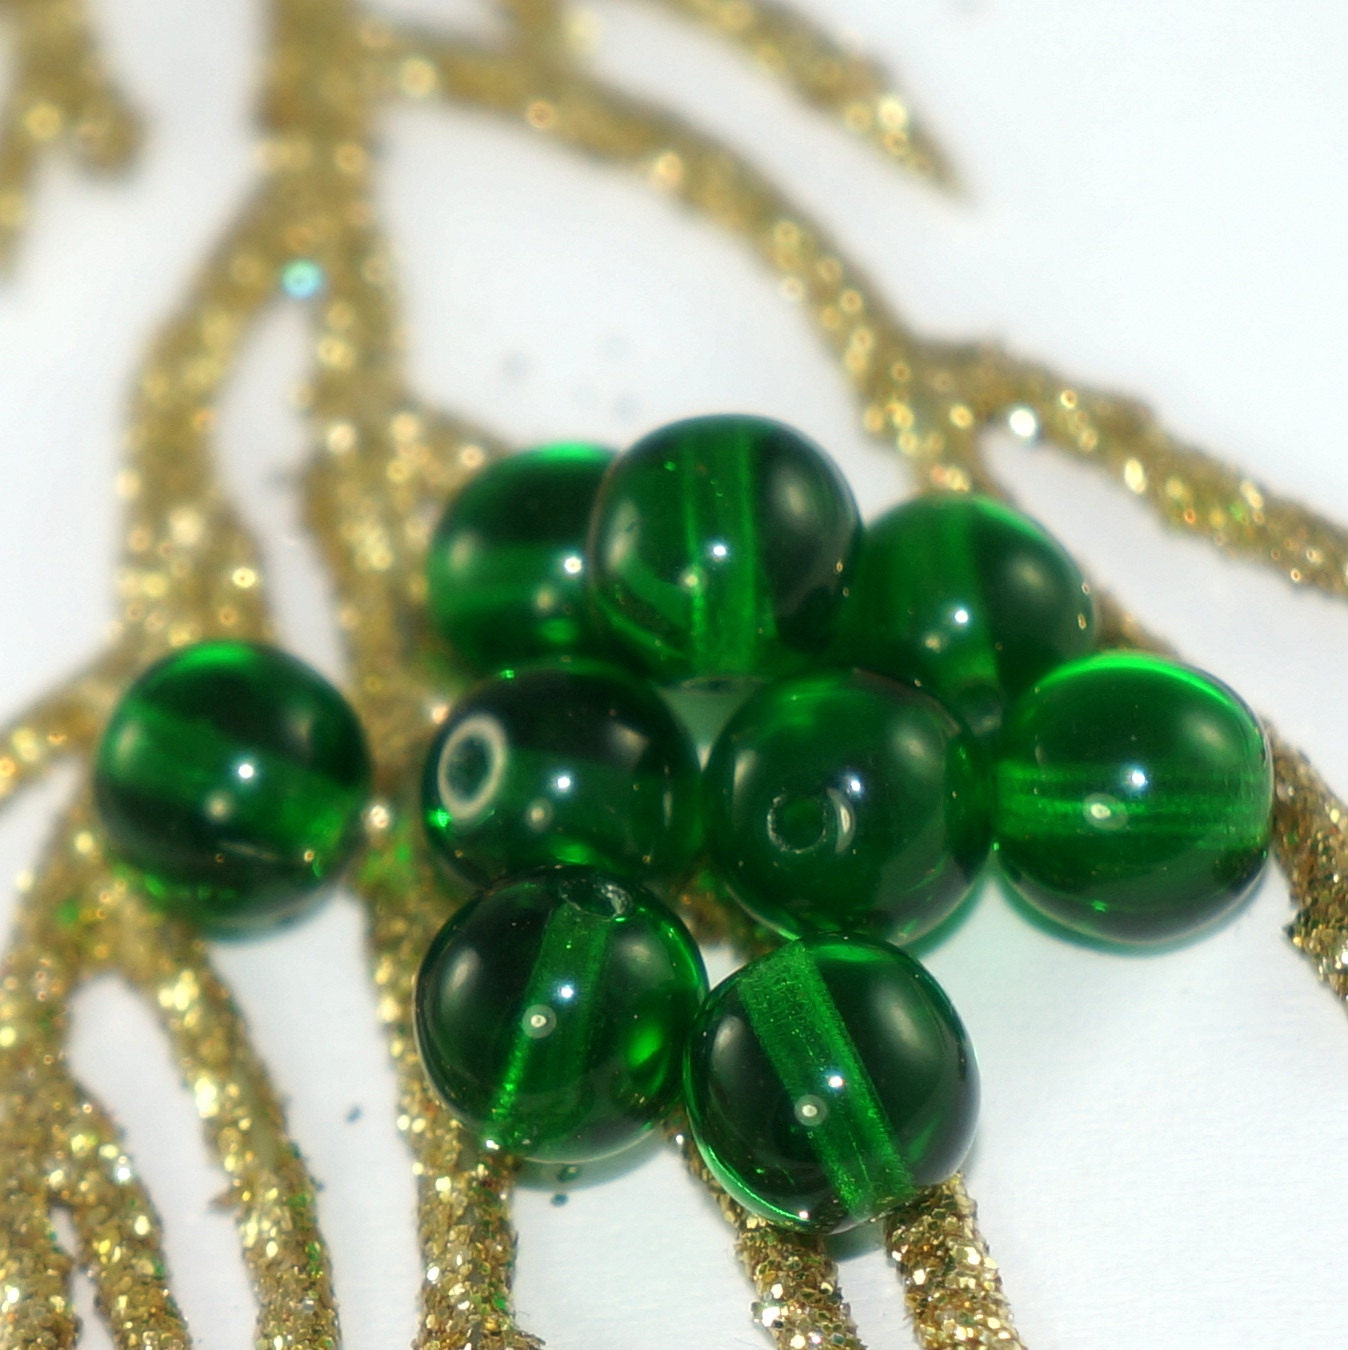 Emerald Bead Beads: Clear Emerald Green Glass Czech Round Beads By